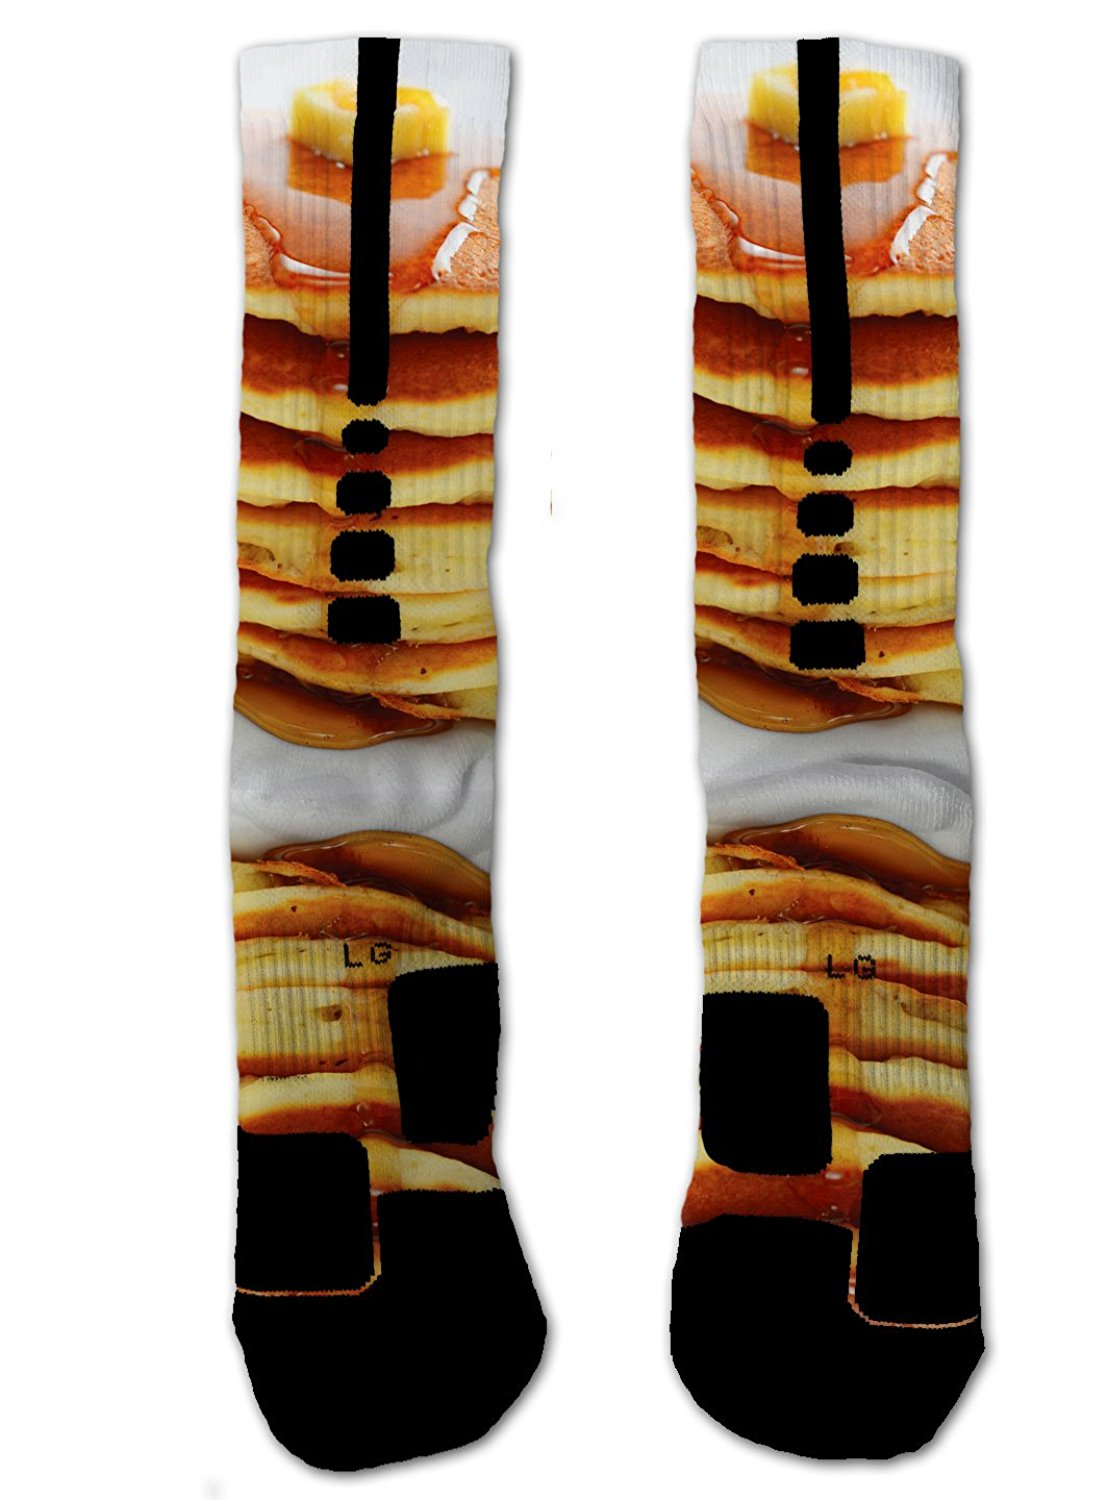 Alpha Nike Elite Pancake Socks